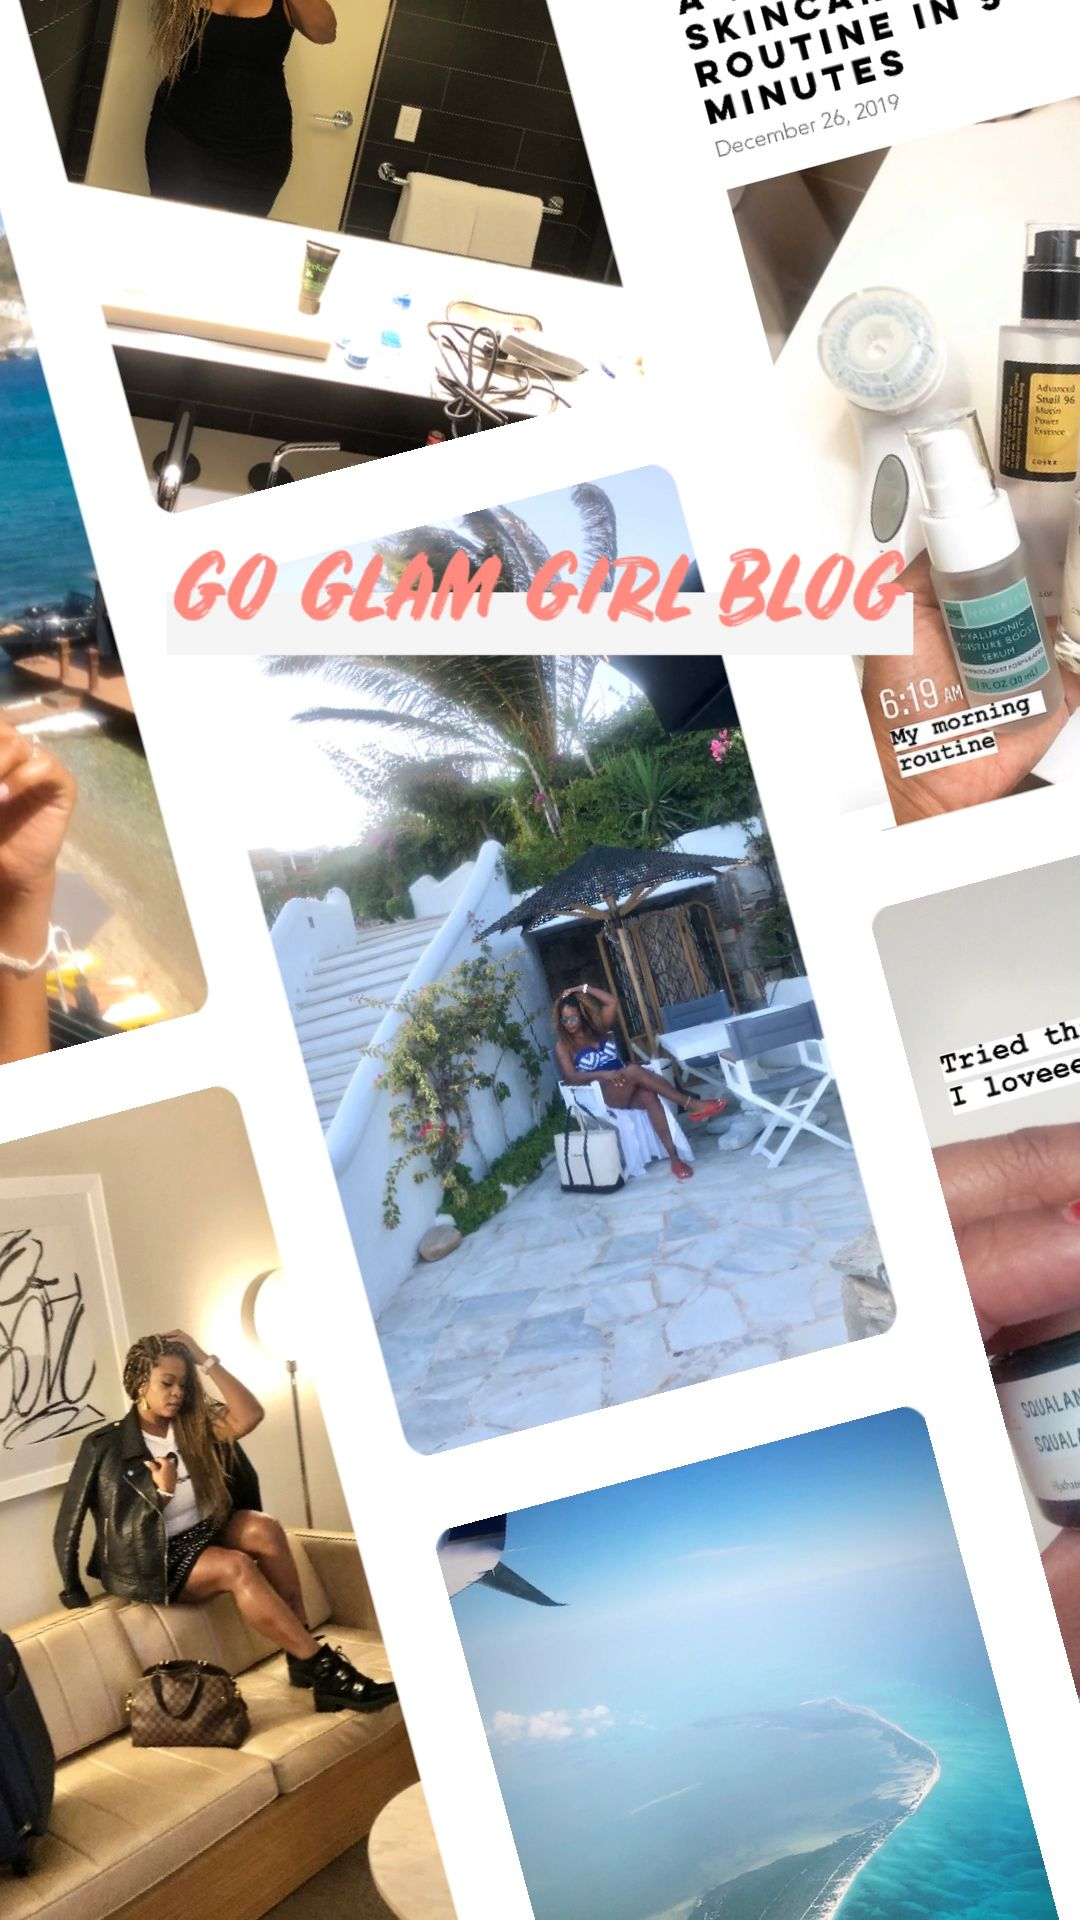 Blog for beauty, travel, and skincare tips #beautyblogger #blogger #travelblogger #travelblog #blackbloggers